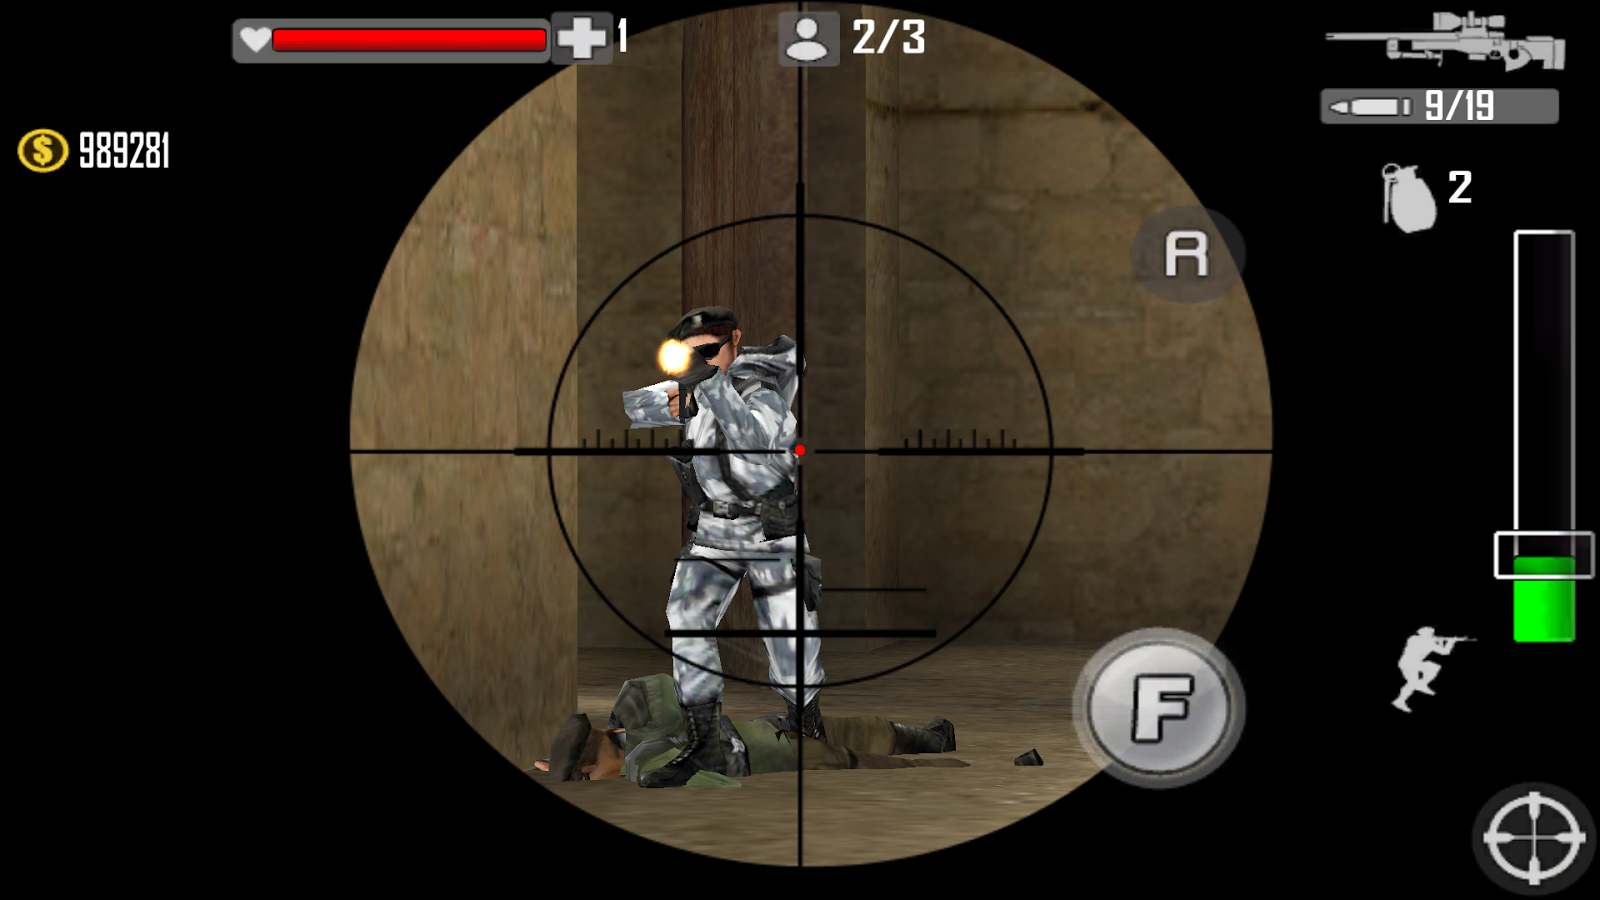 Shoot Strike War Fire Screenshot 3